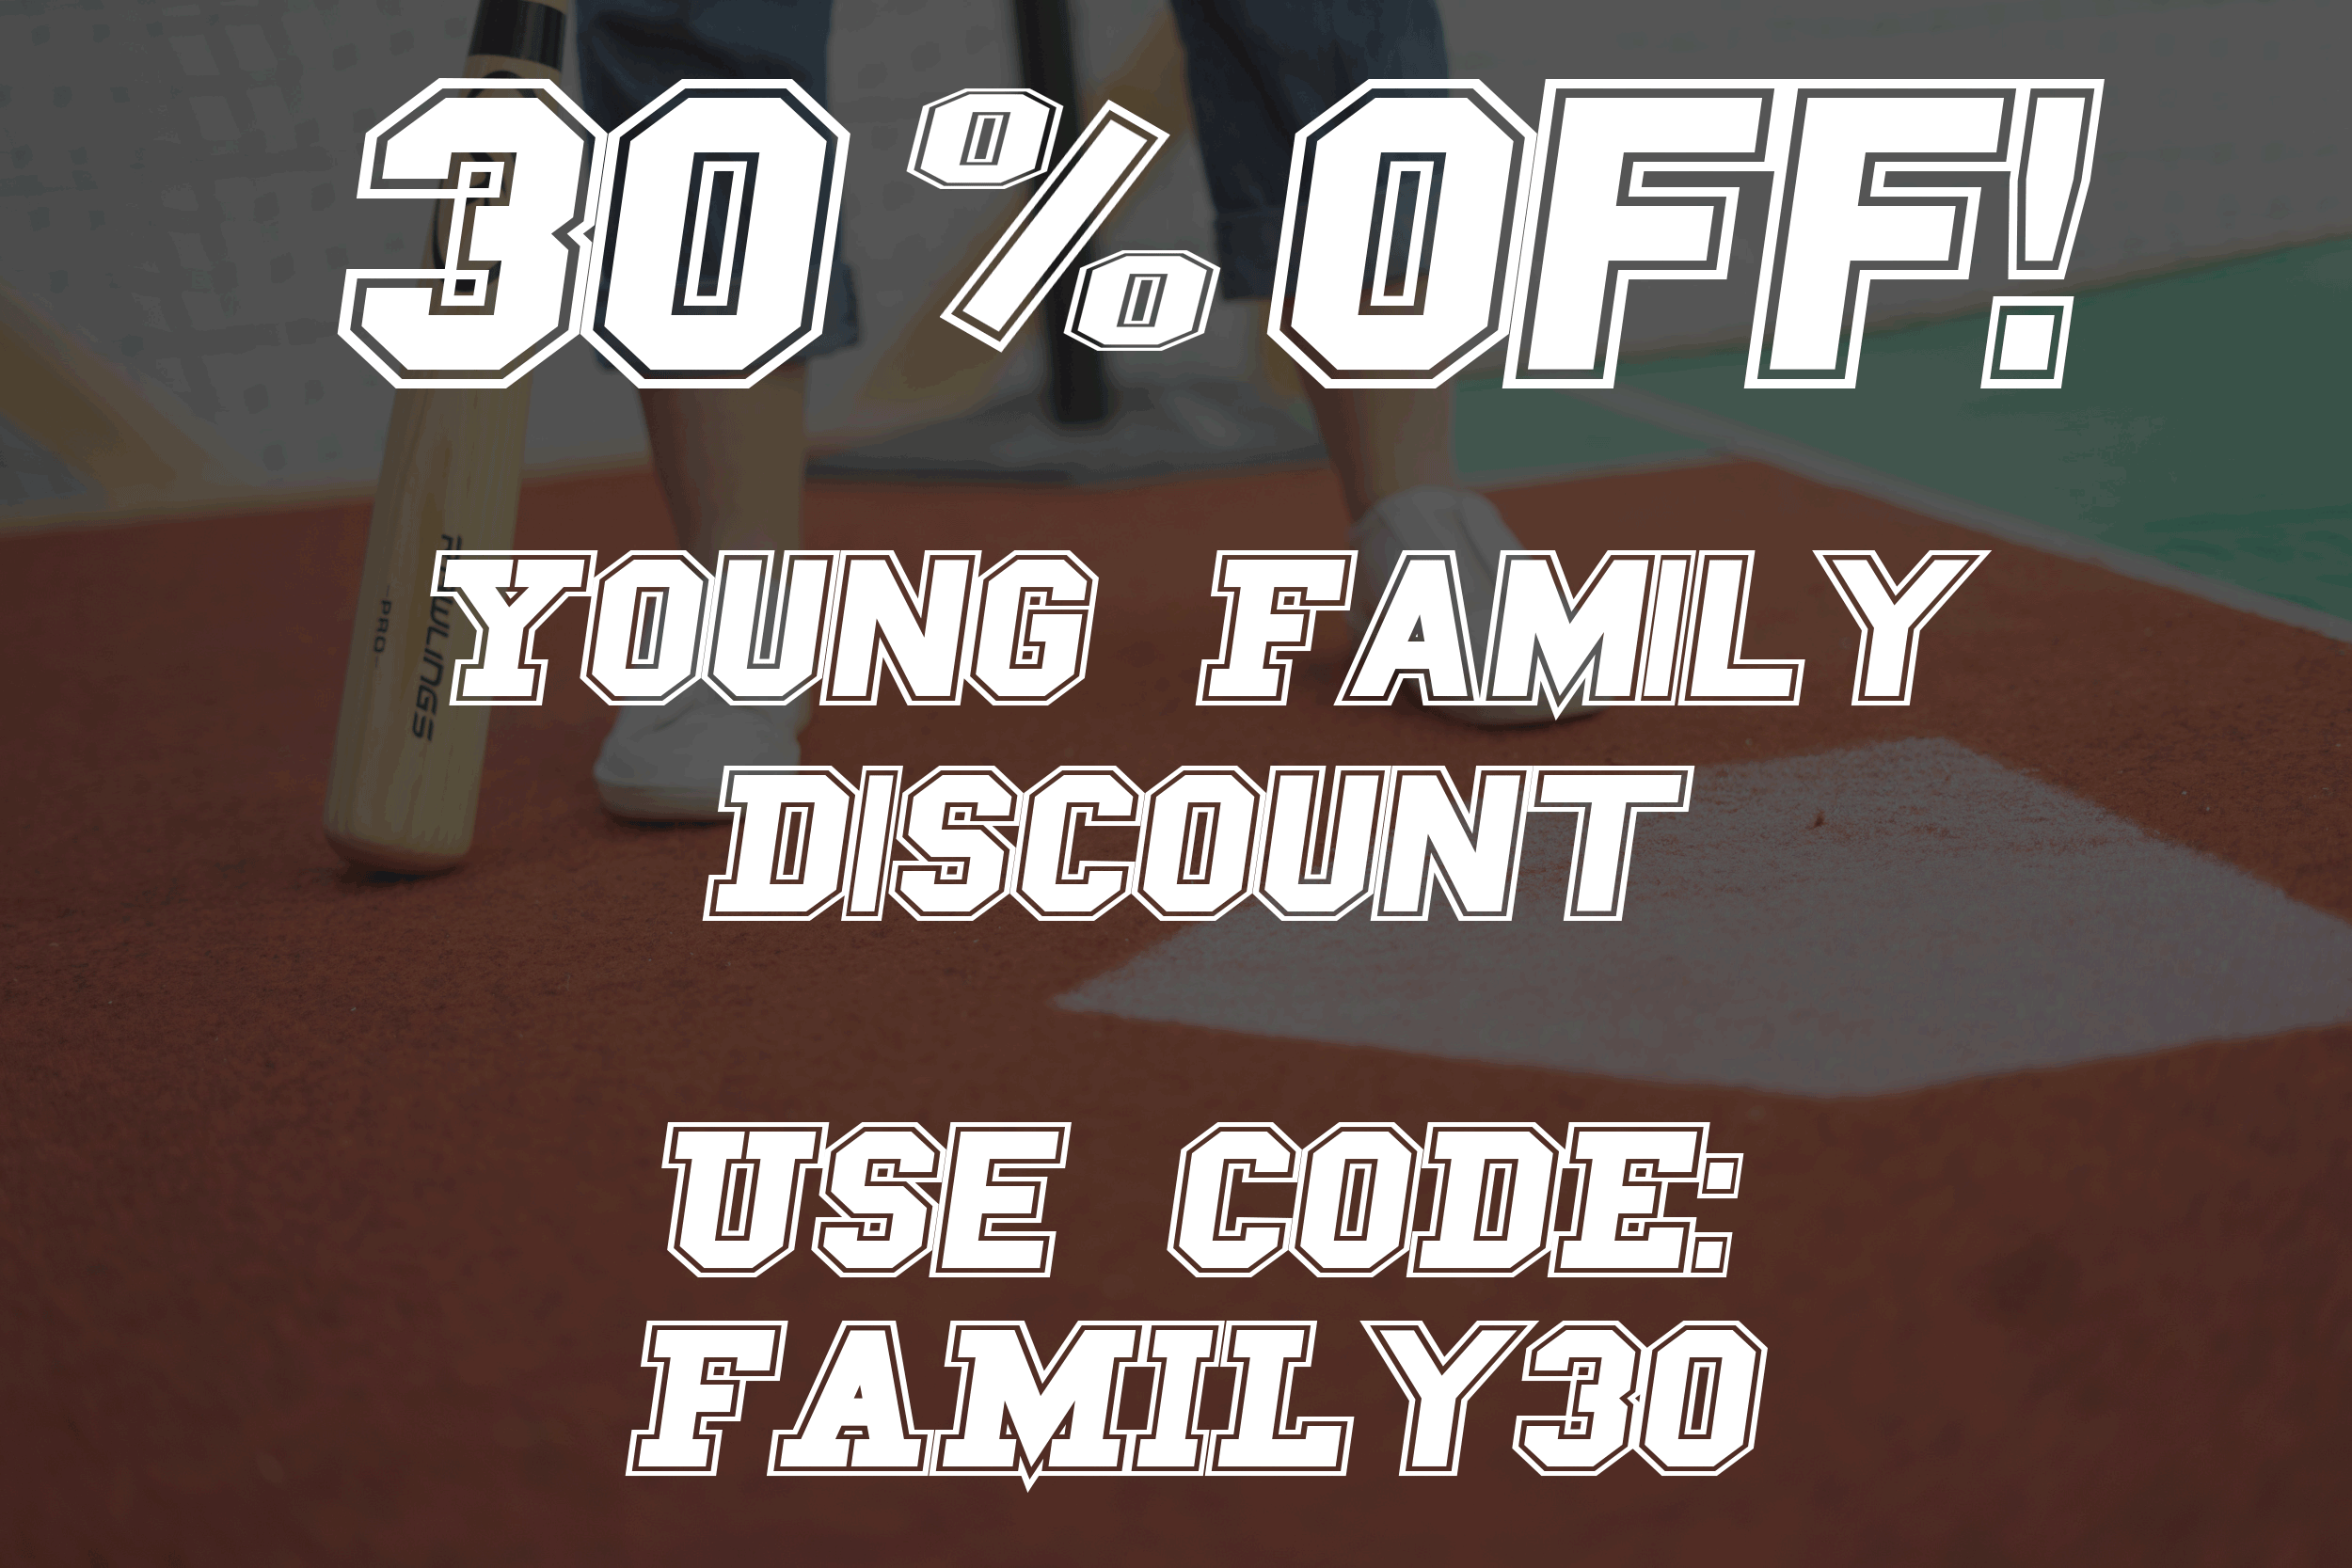 family 30 discount deal activity